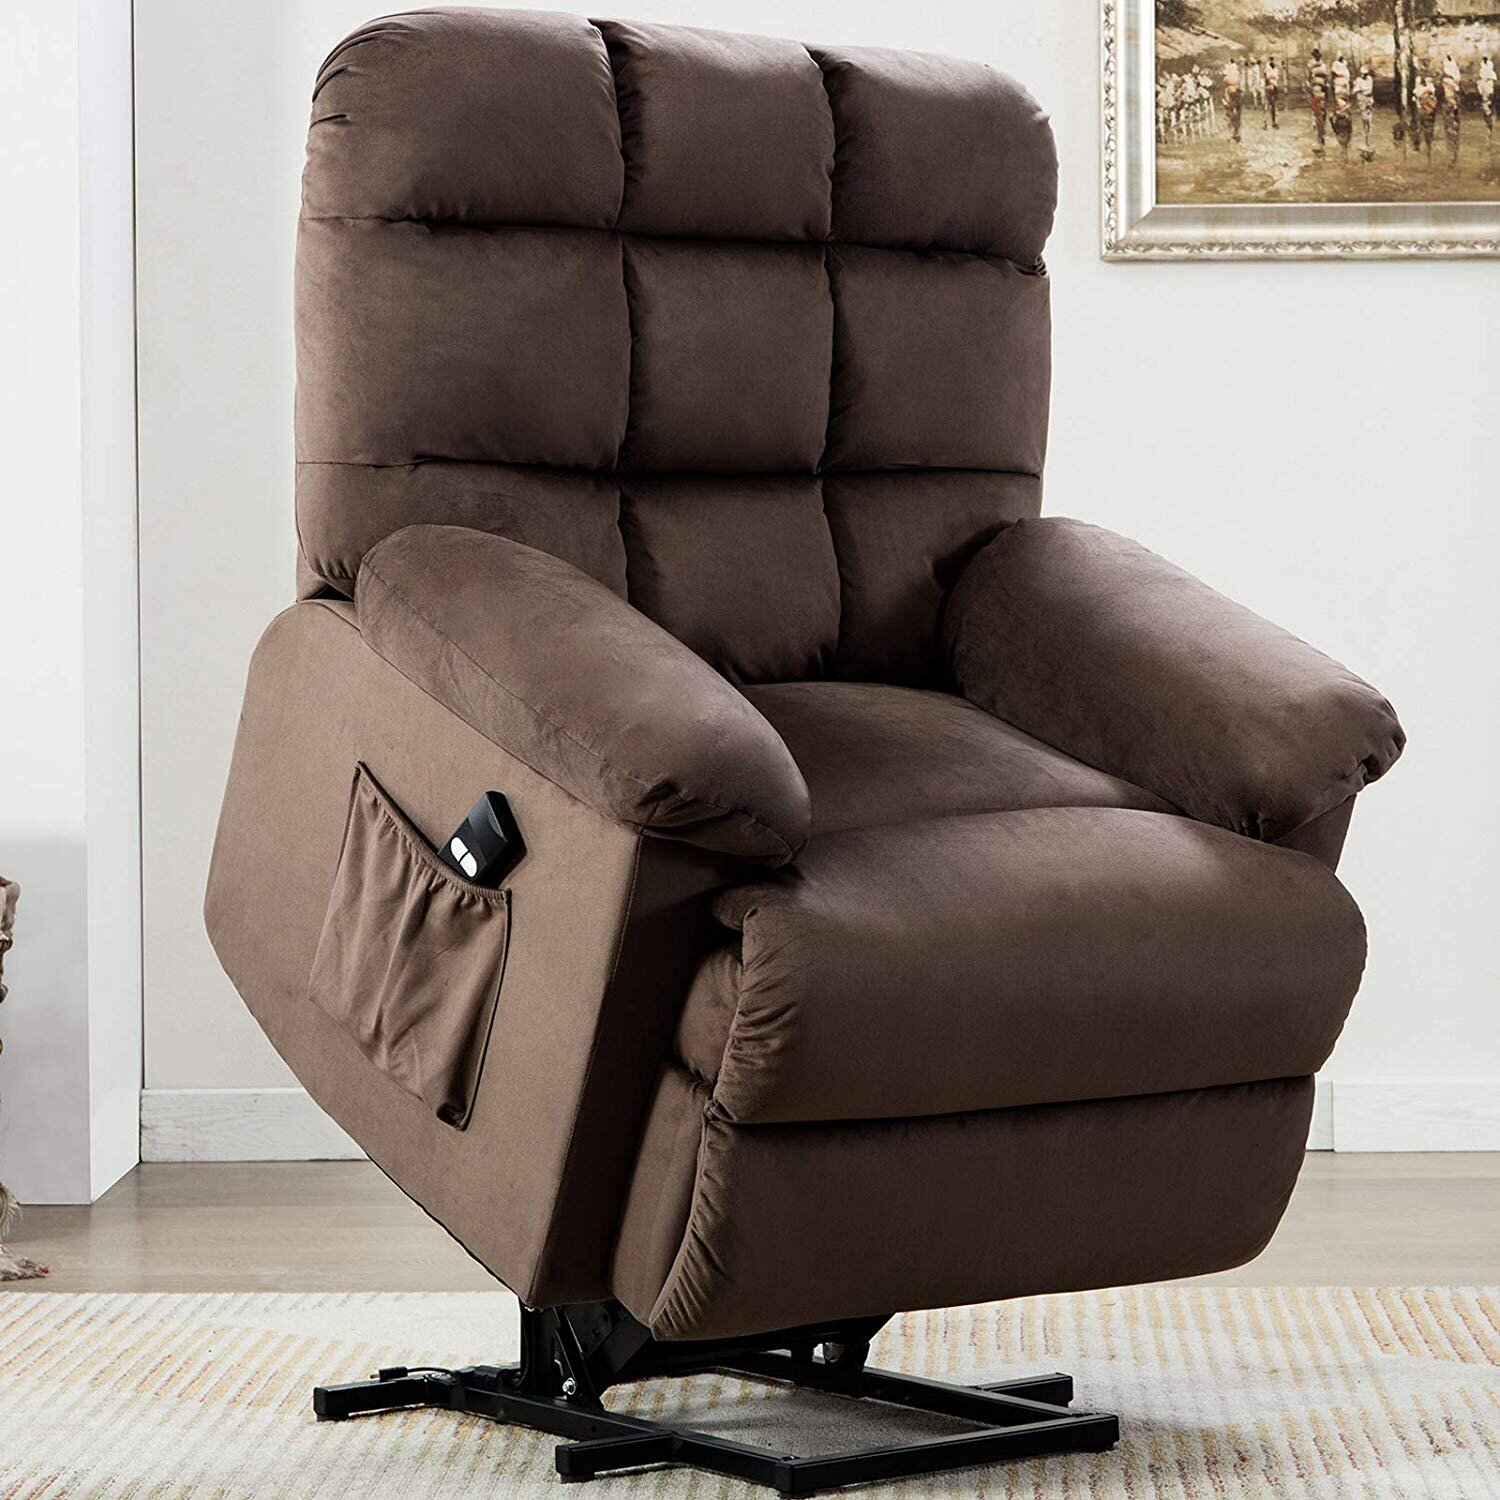 PU Leather Black Manual Swivel Rocker Recliner Chair Side /& Front Pockets for Living Room 2 Cup Holders Glider Rocking Reclining Chair for Nursery Ergonomic Lounge Chair with Lumbar Pillow